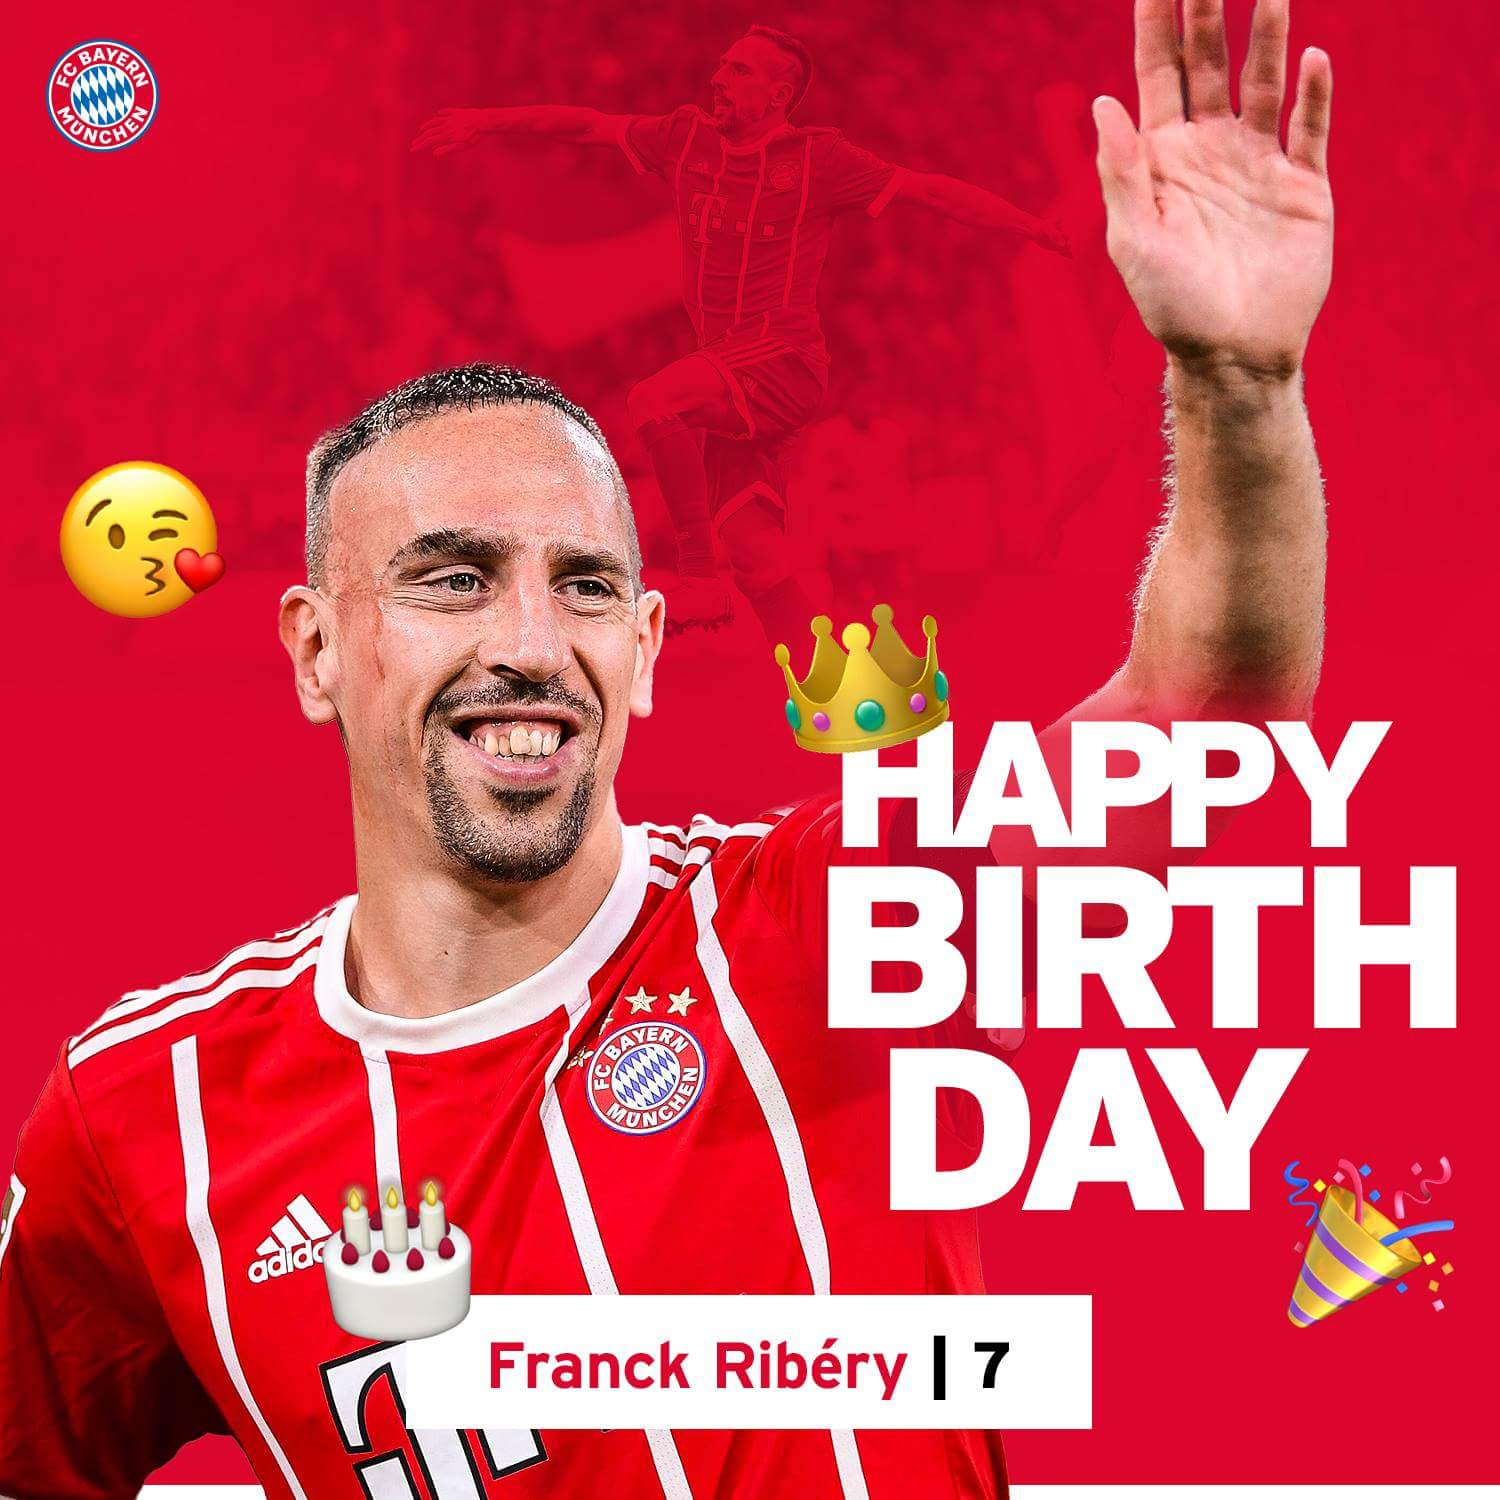 Happy birthday Franck ribery \the Jewel of France\